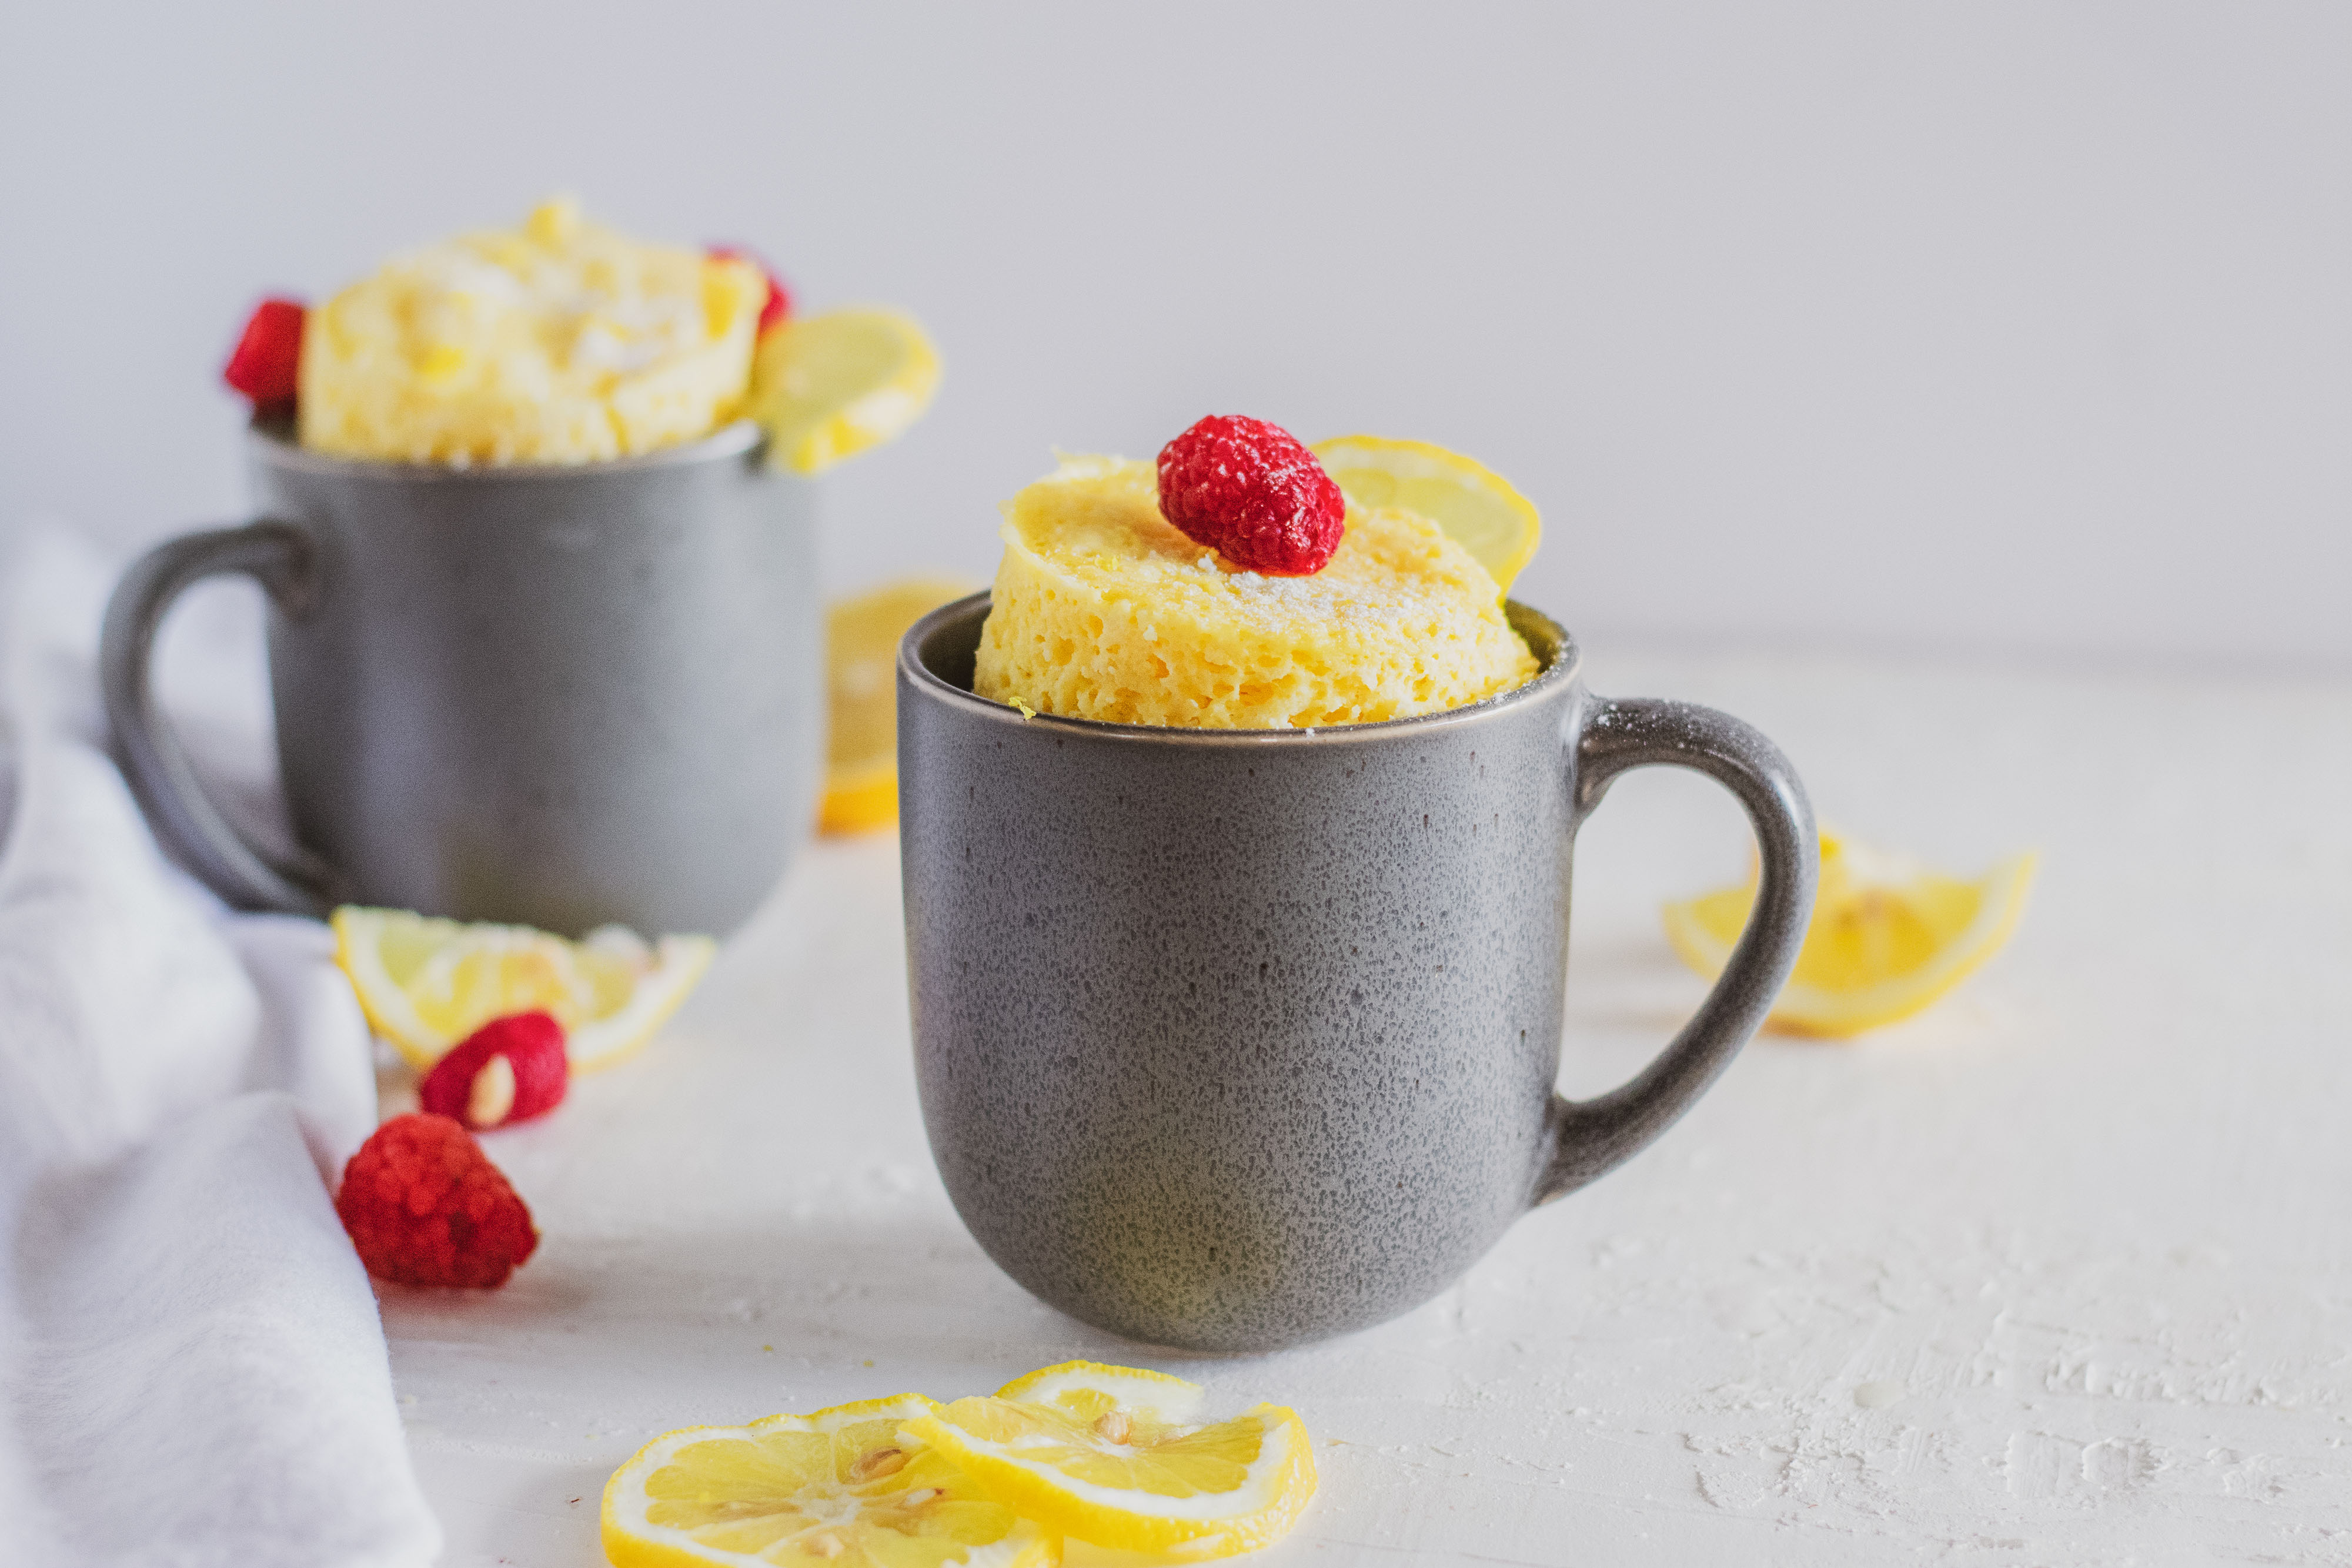 Low carb lemon mug cakes in a grey mug with raspberries and lemon slices on a white surface.